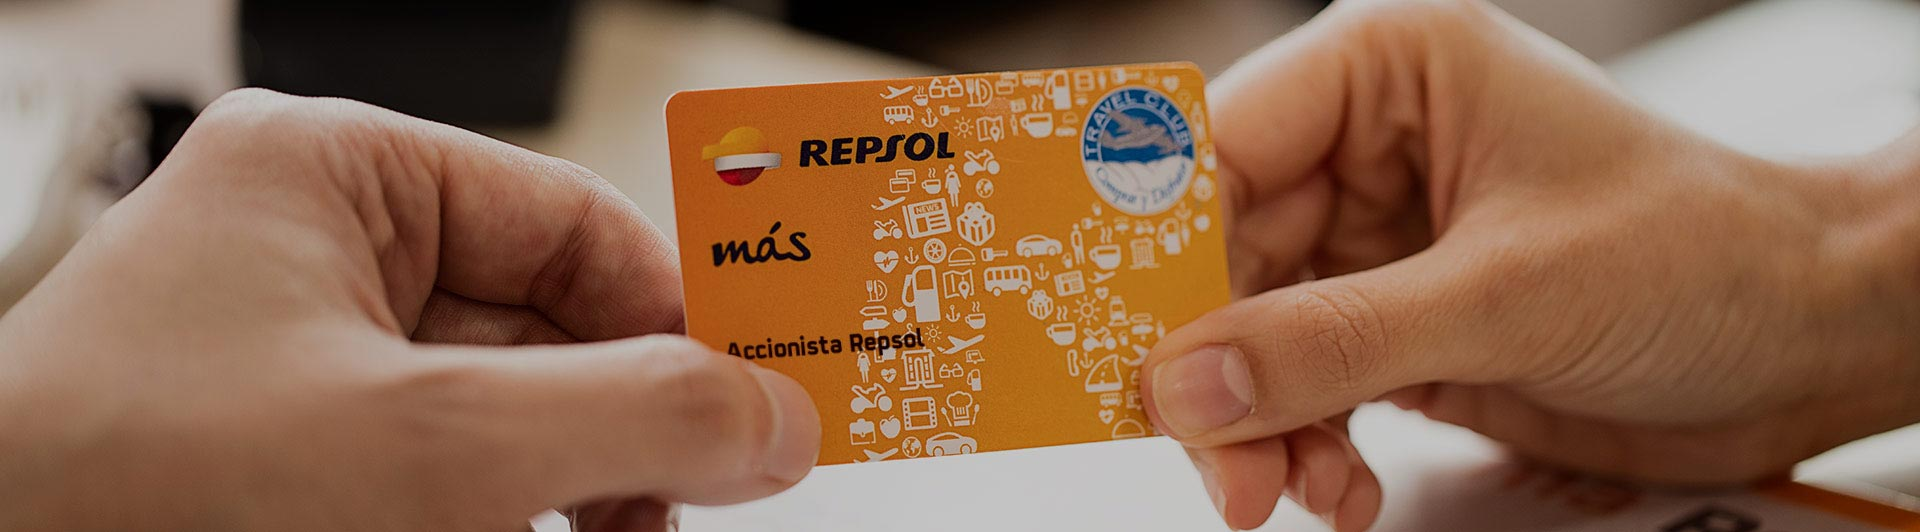 Two hands holding a Repsol Más card